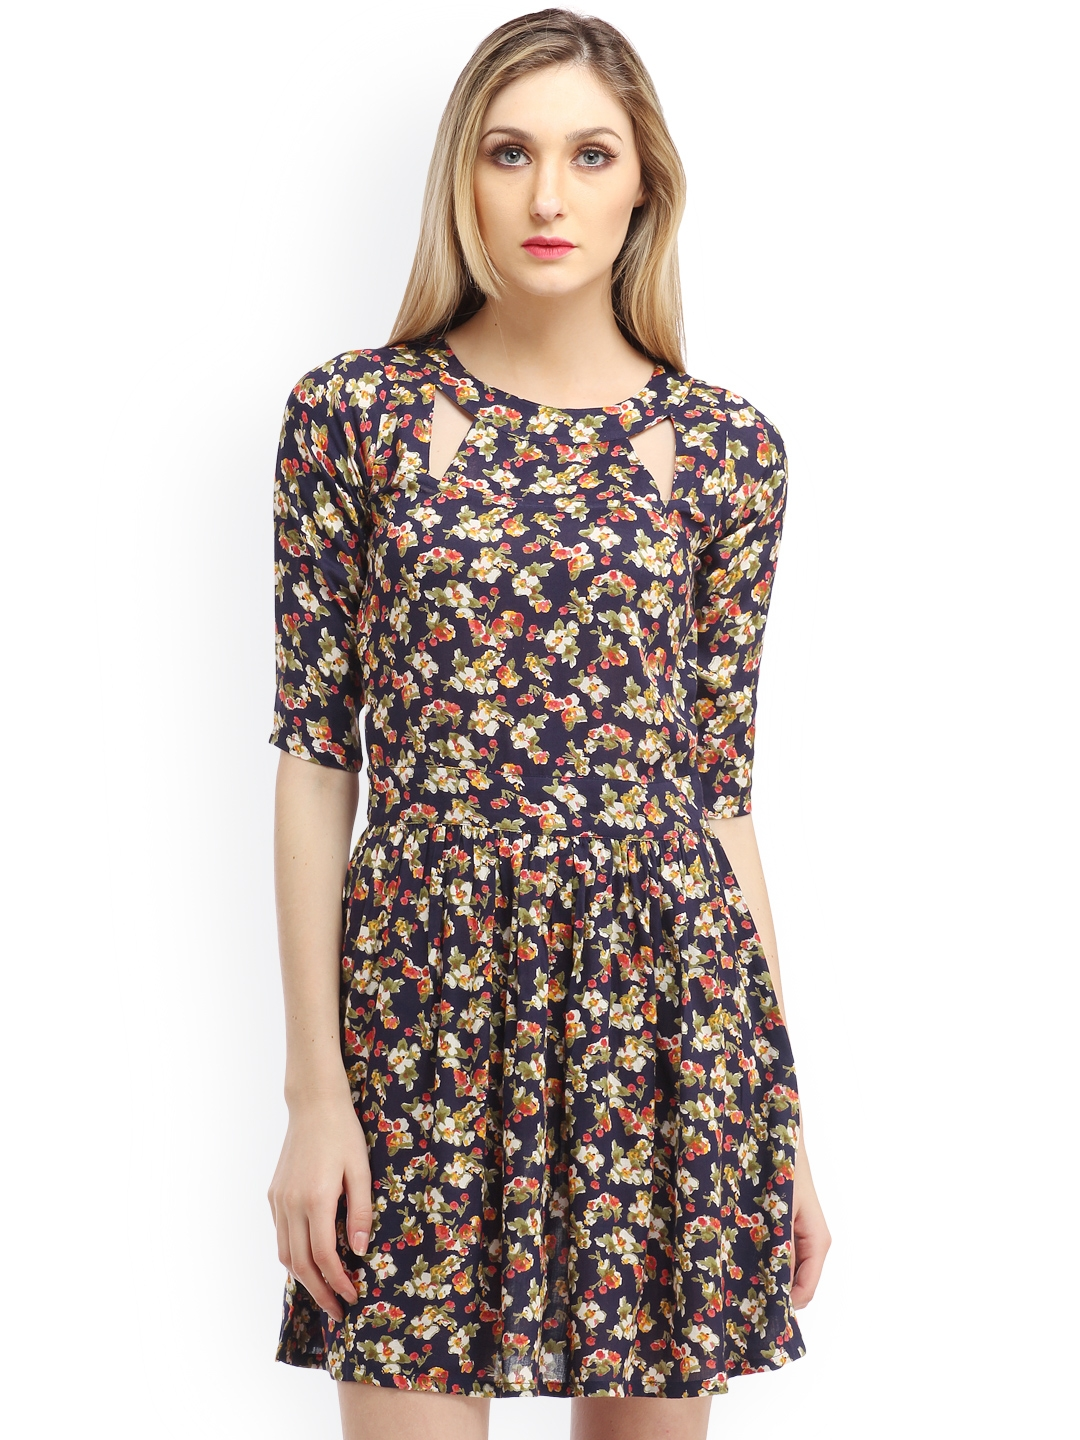 Buy Cation Navy Printed Fit   Flare Dress - Dresses for Women ... c15926fd6